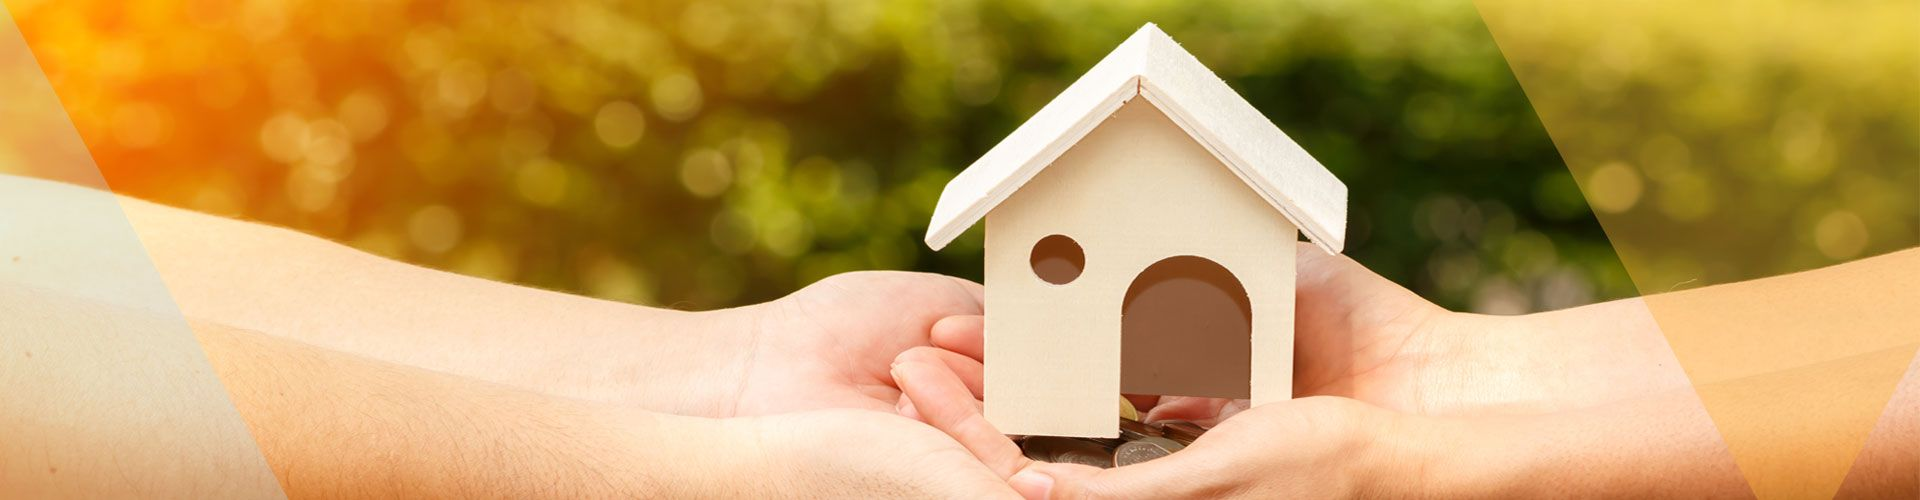 Work For Us - Social and Affordable Housing Policy Adviser Image